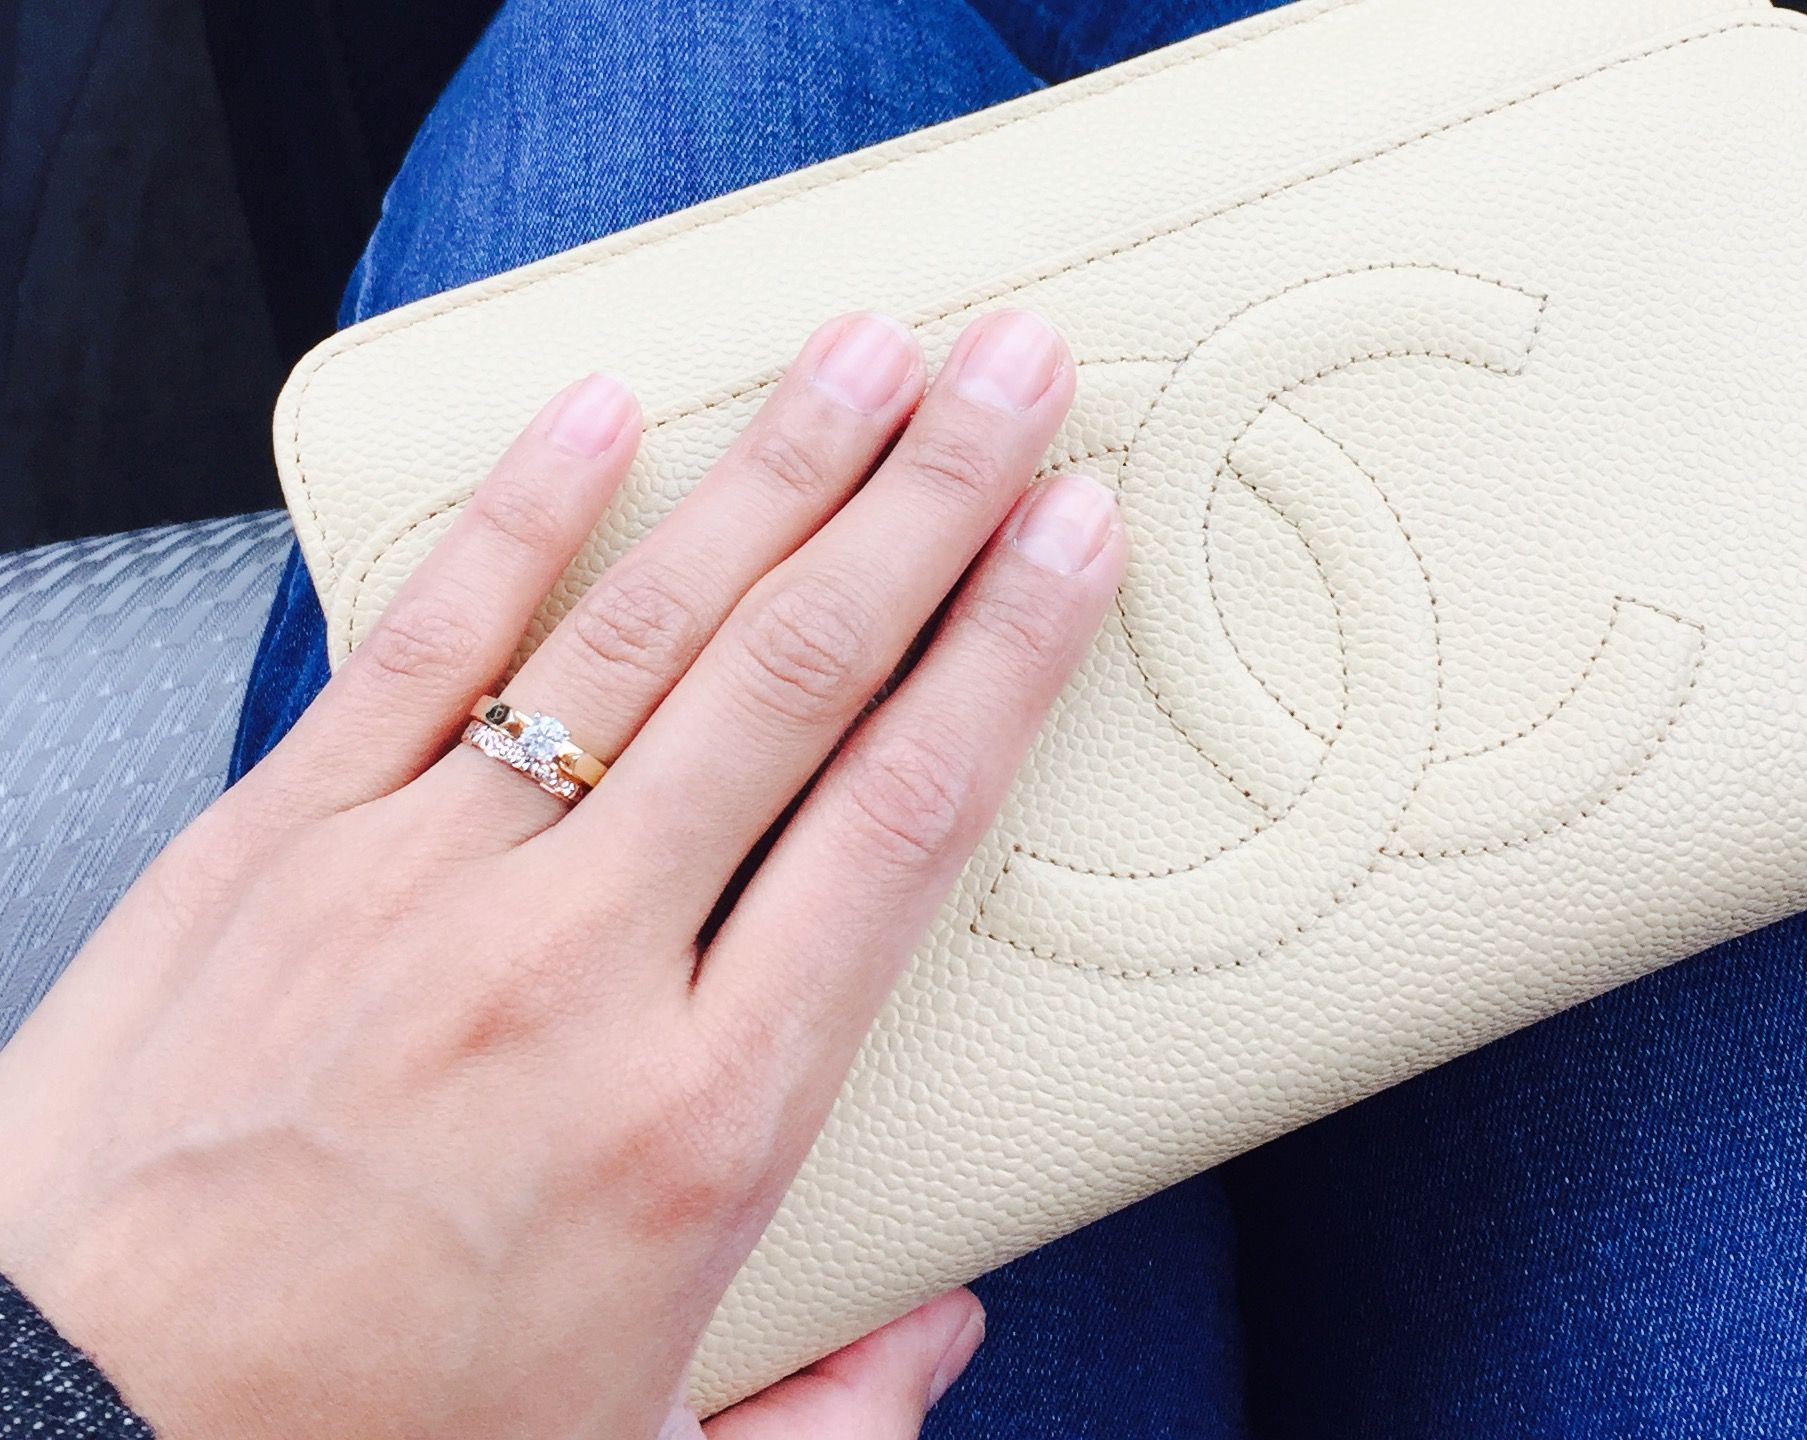 Pin by k@r€n on Engagement ring photos | Pinterest | Engagement ring ...